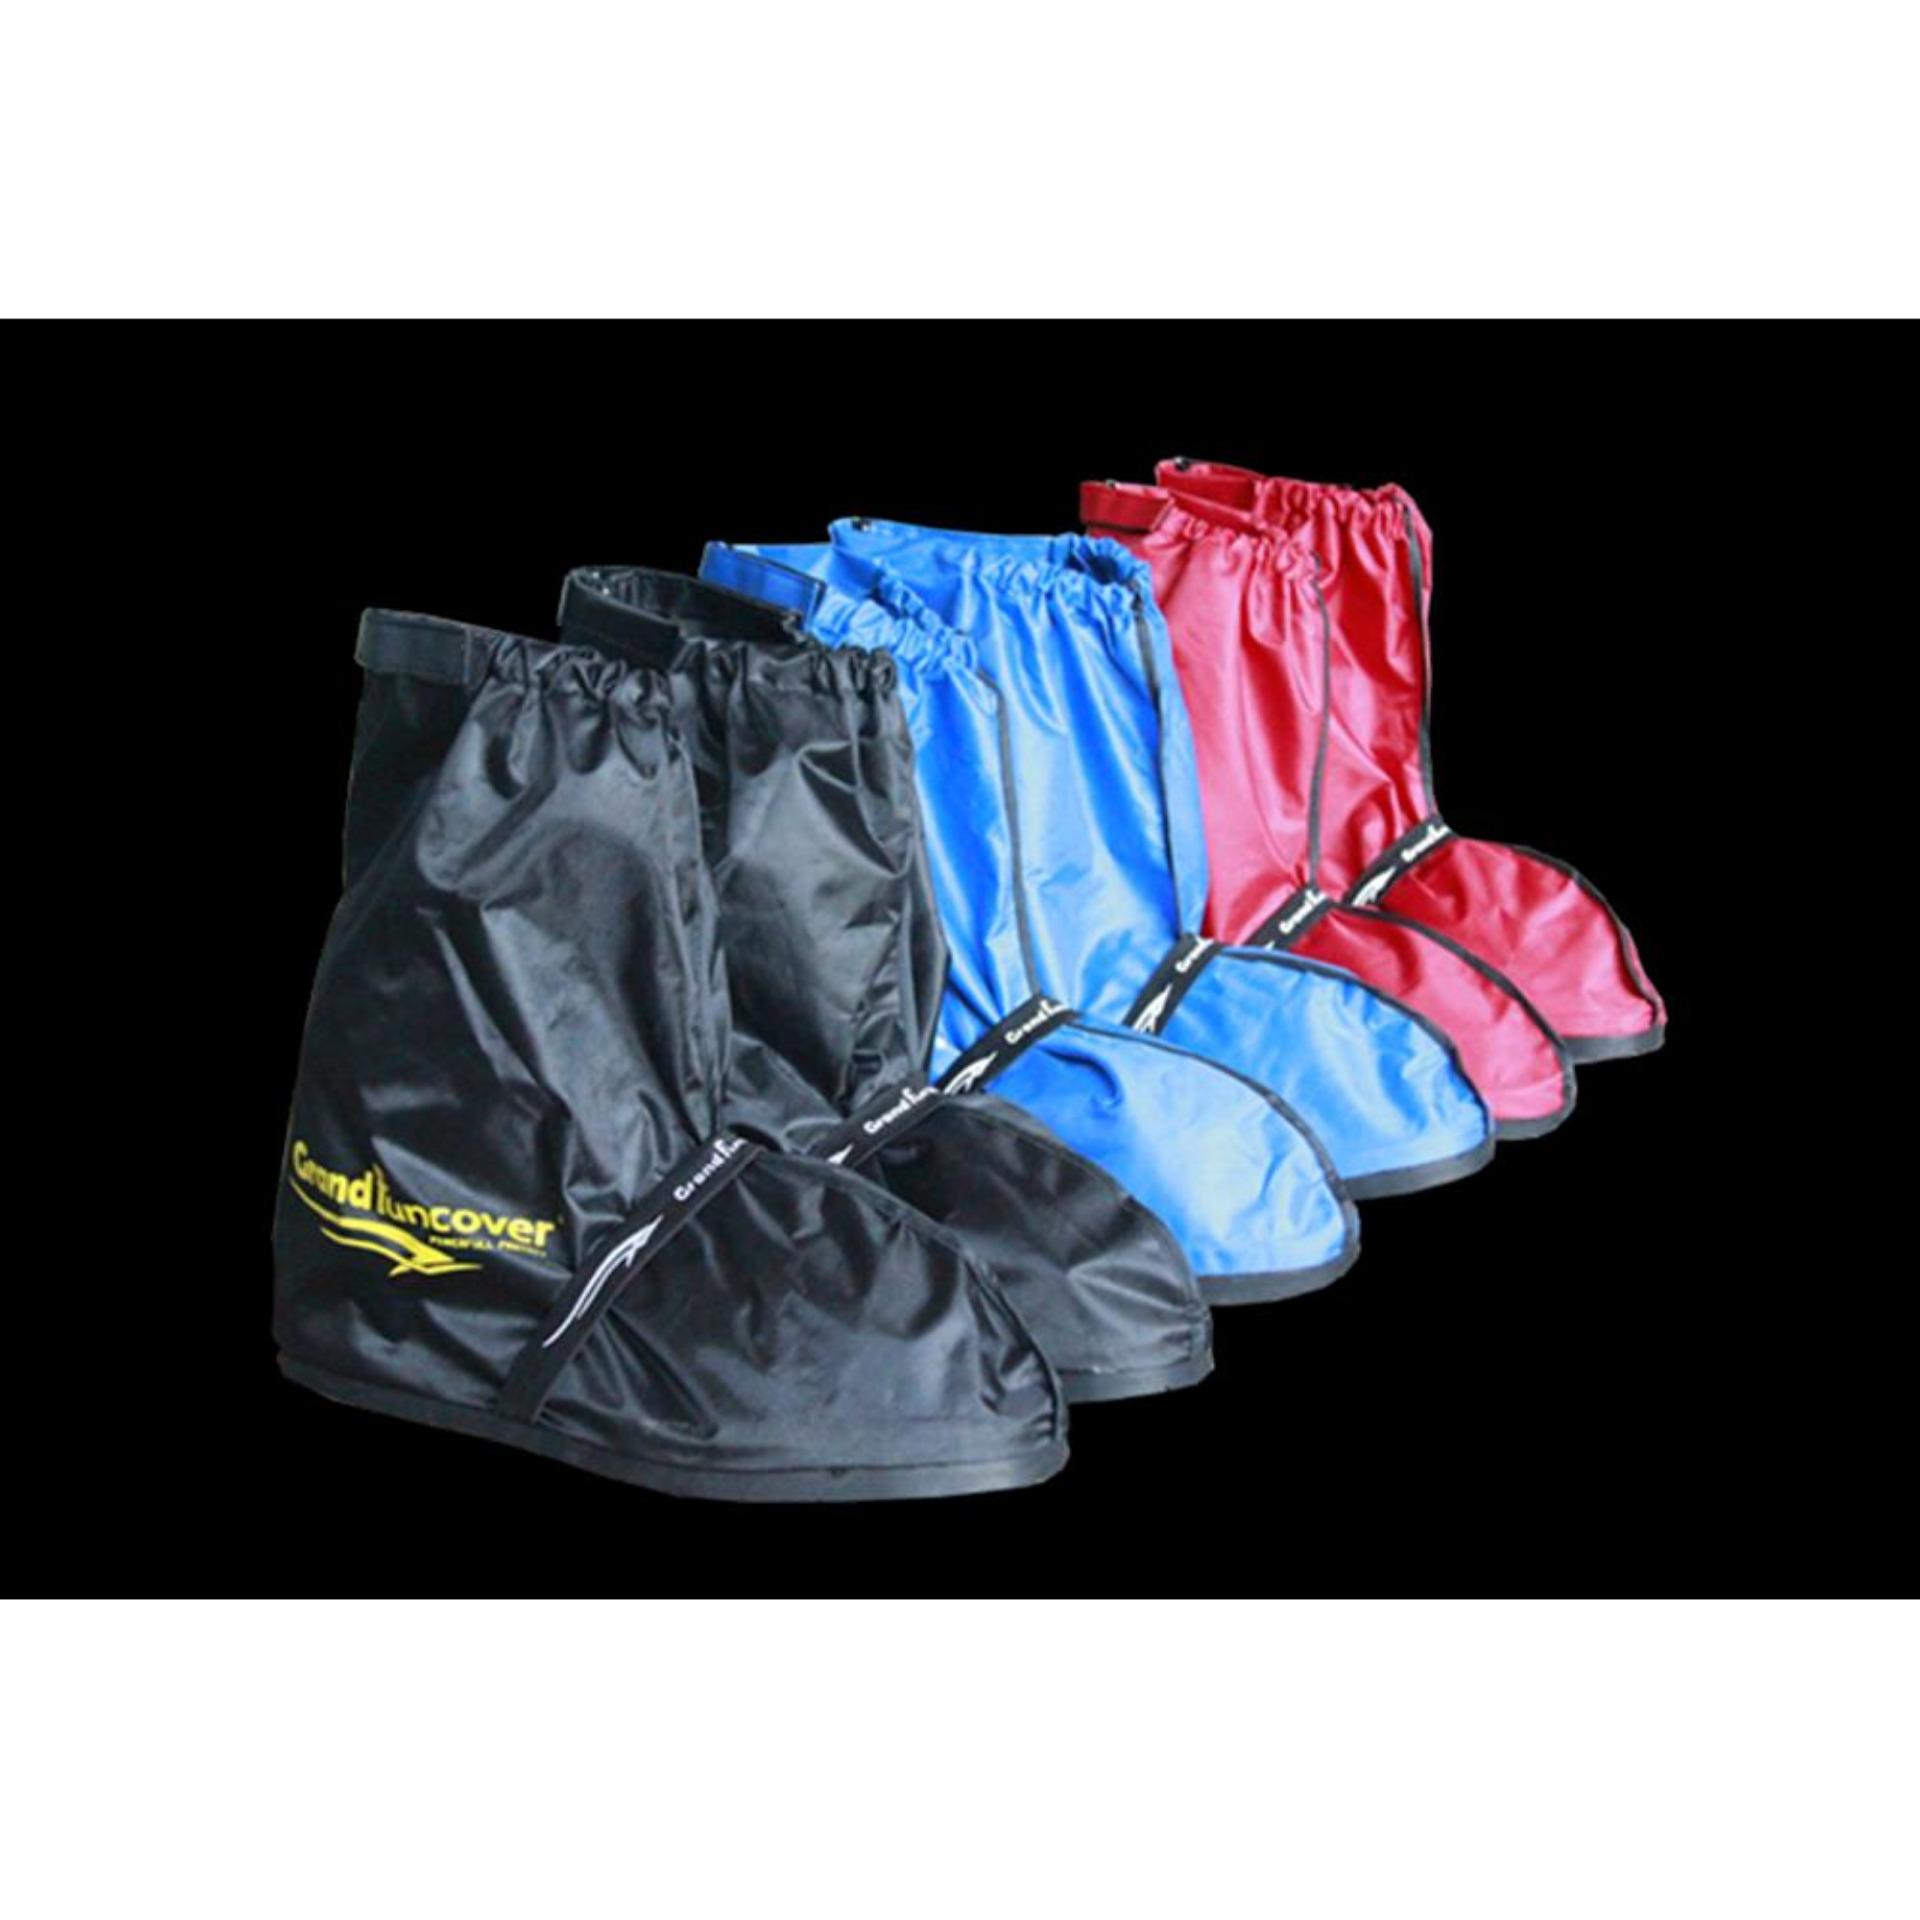 Cover Shoes Grand Funcover Extreme Protection Foot